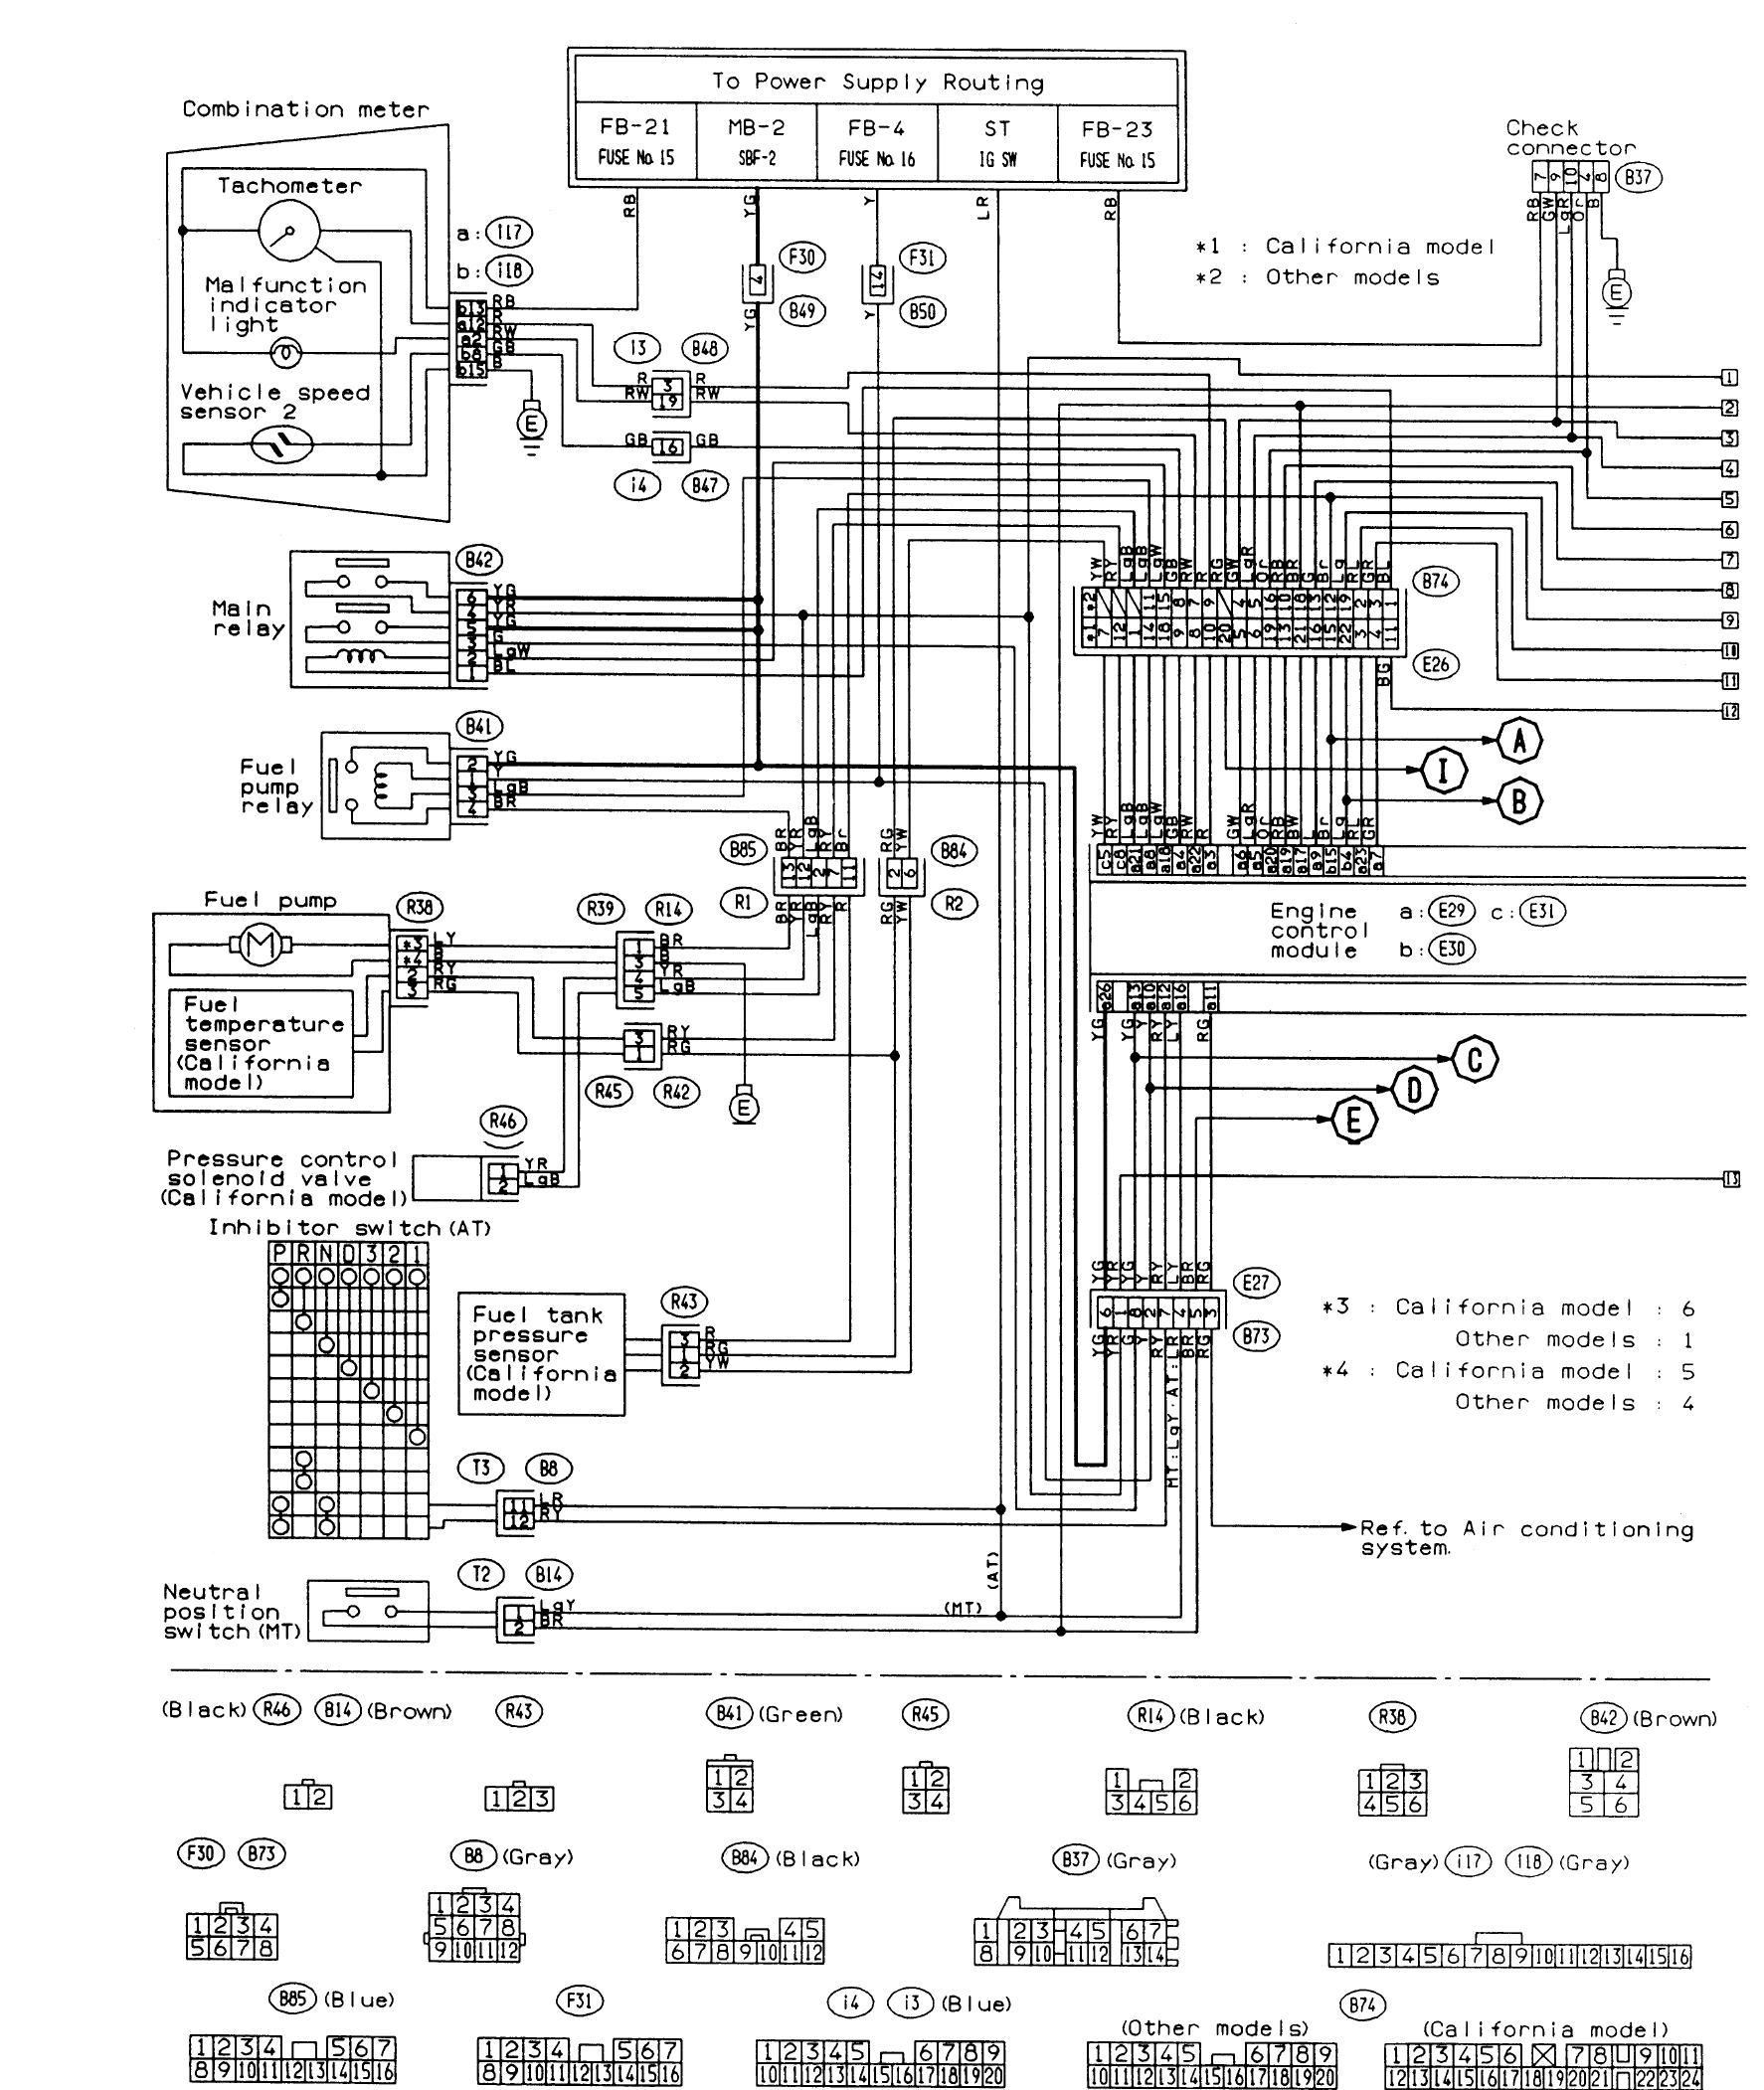 subaru ecu wiring diagram FUSlrCX 1995 subaru impreza wiring diagram electrical schematic of 1993 subaru wiring diagram at reclaimingppi.co